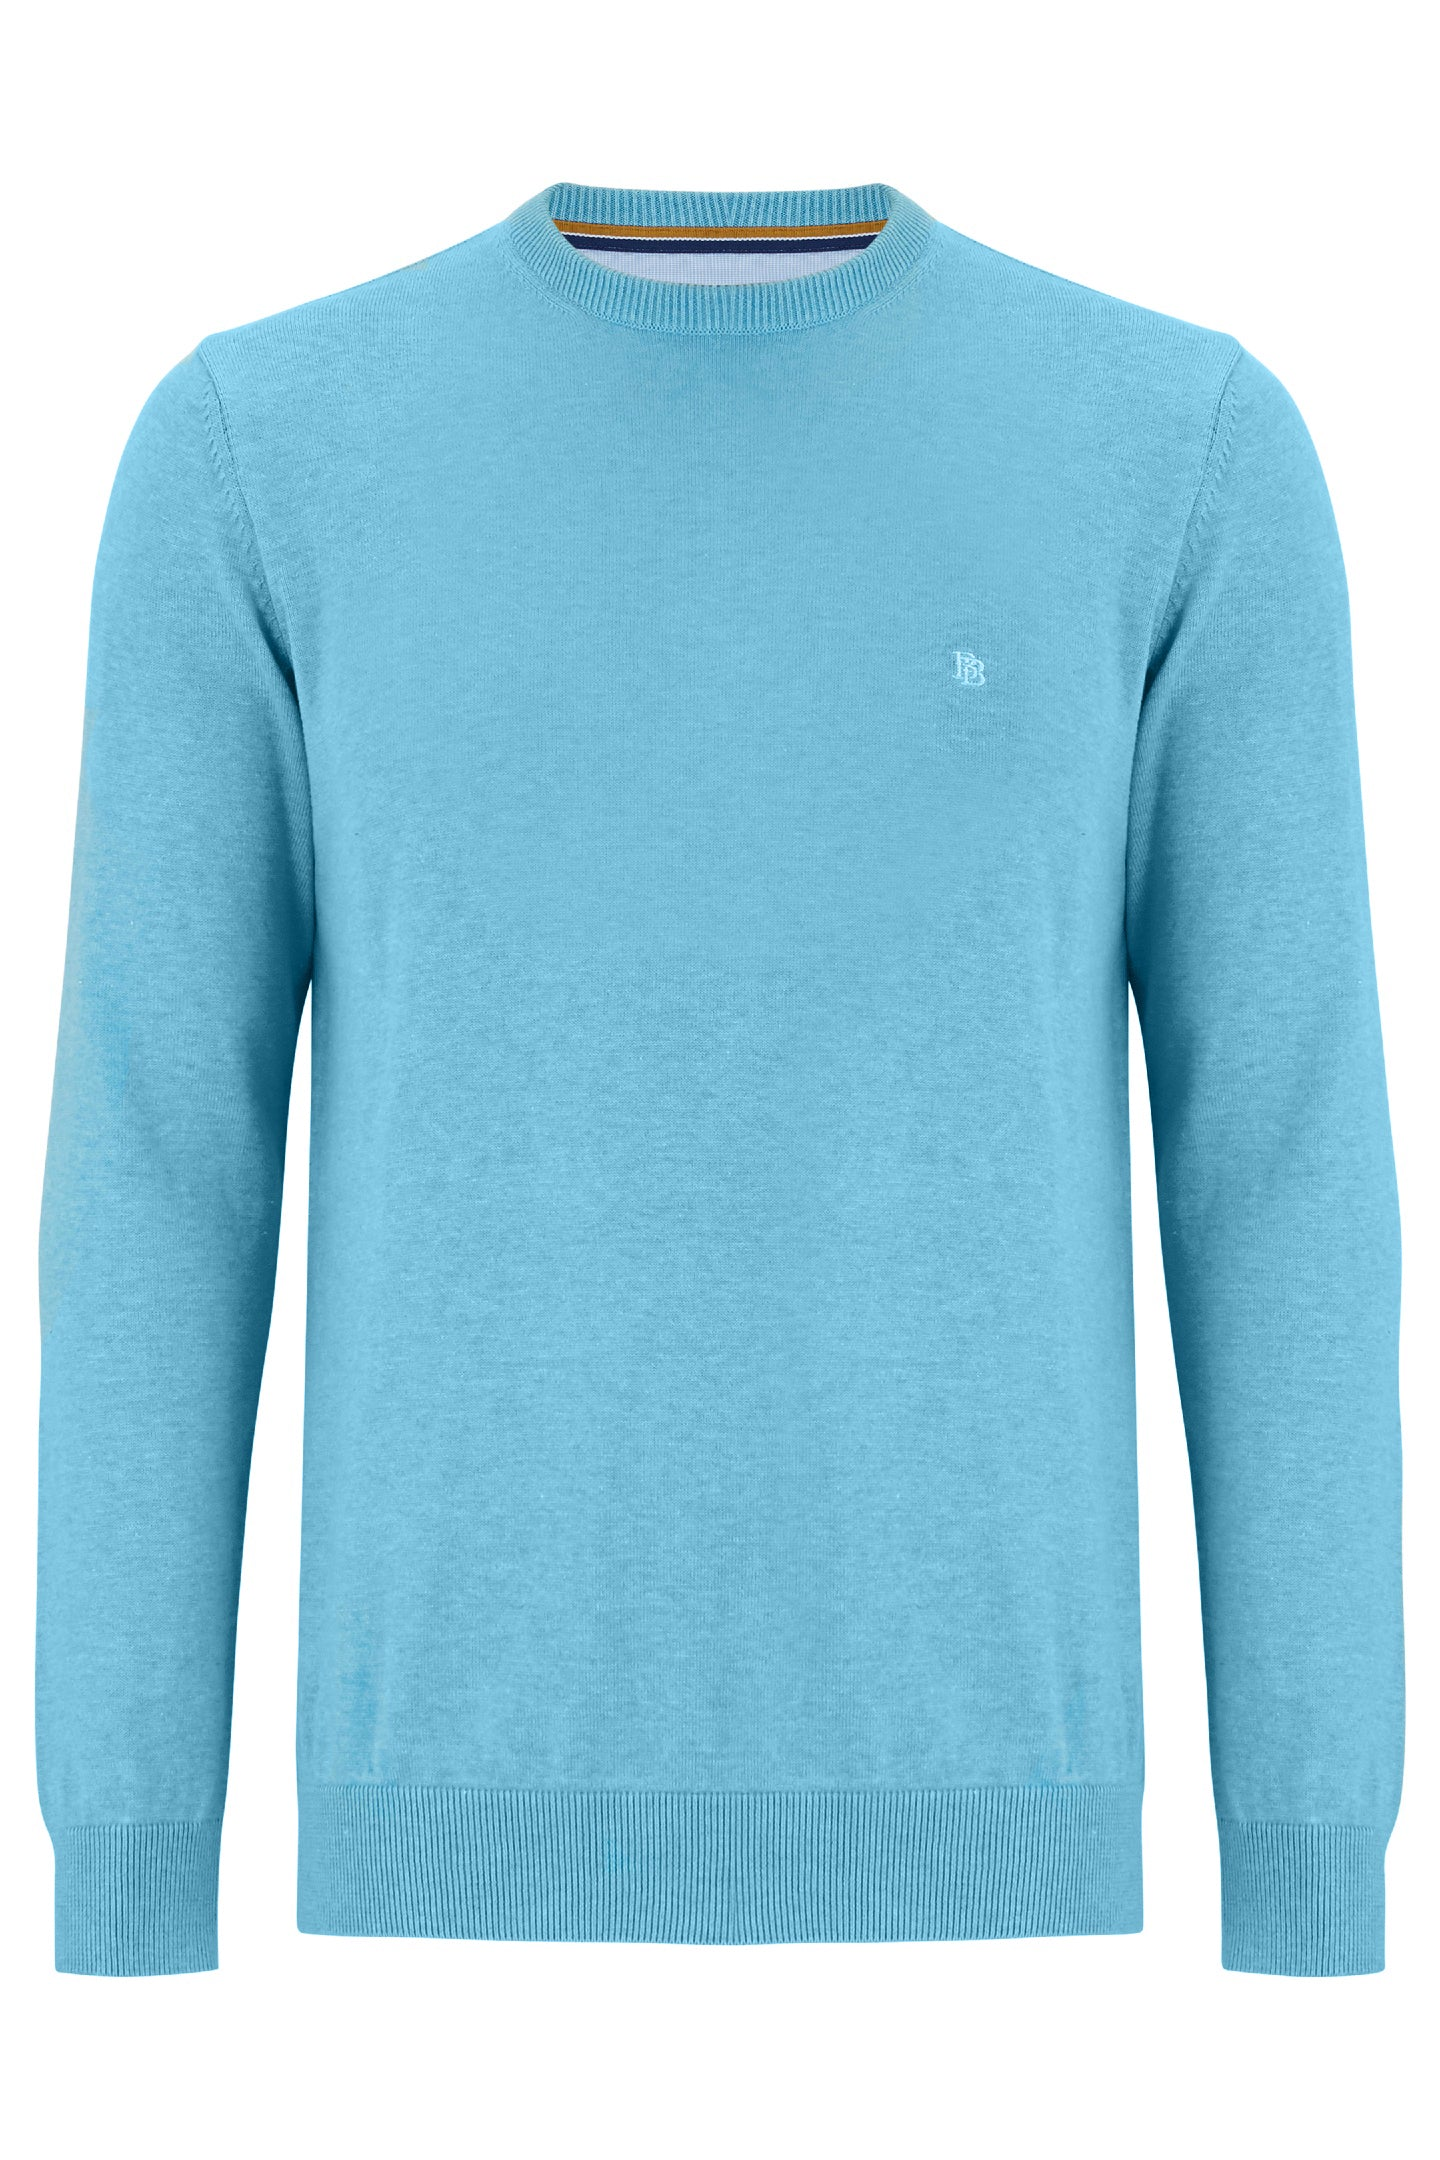 CREW NECK SWEATER | TEAL